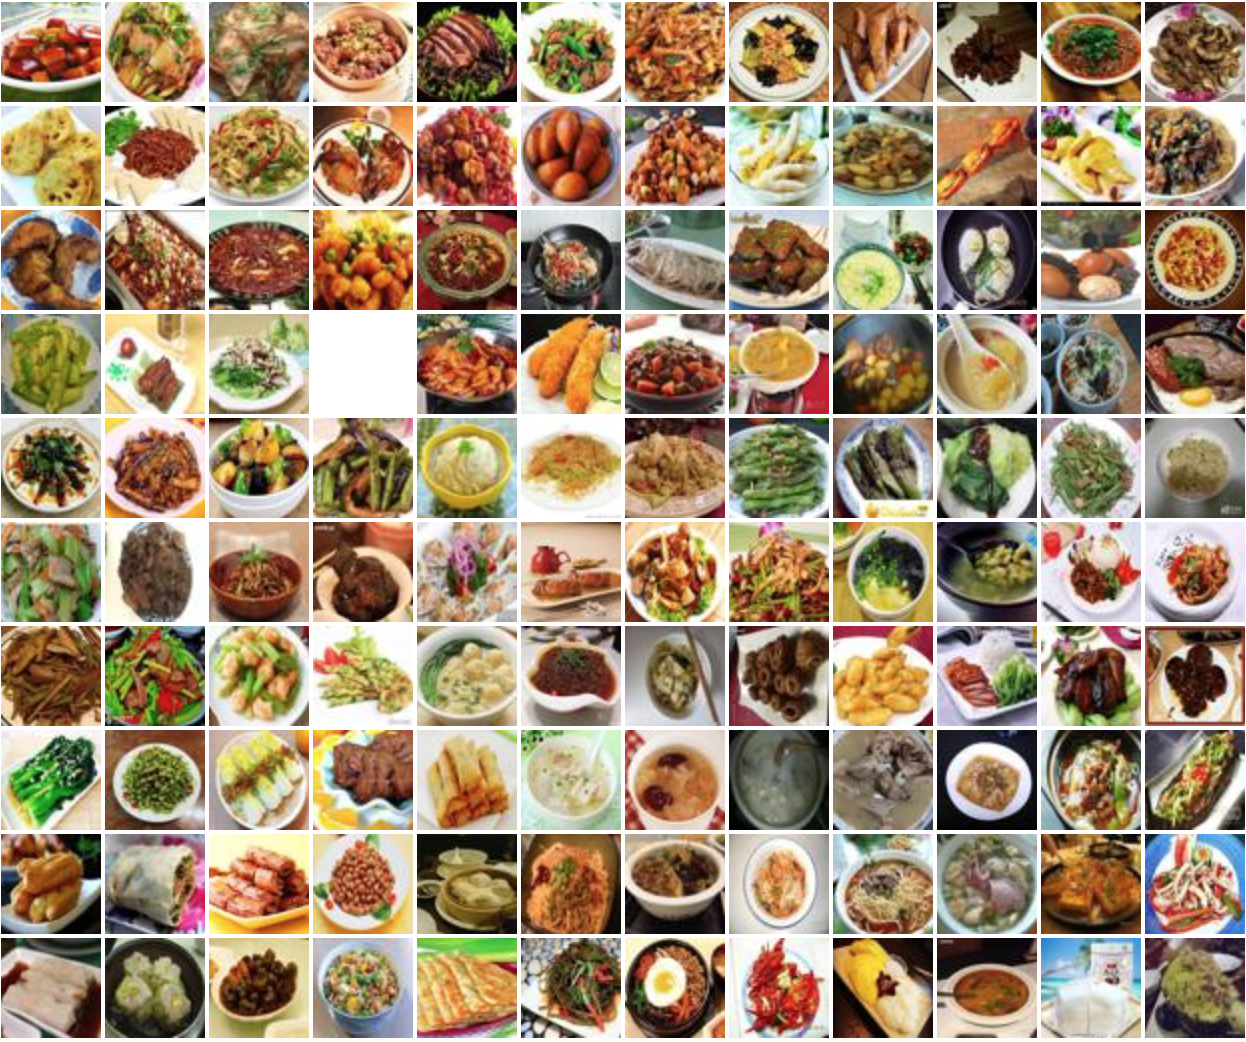 Jingjing chen homepage vireo food 172 contains 110241 food images from 172 categories and most of the categories are popular chinese dishes each image has been manully labeled forumfinder Image collections